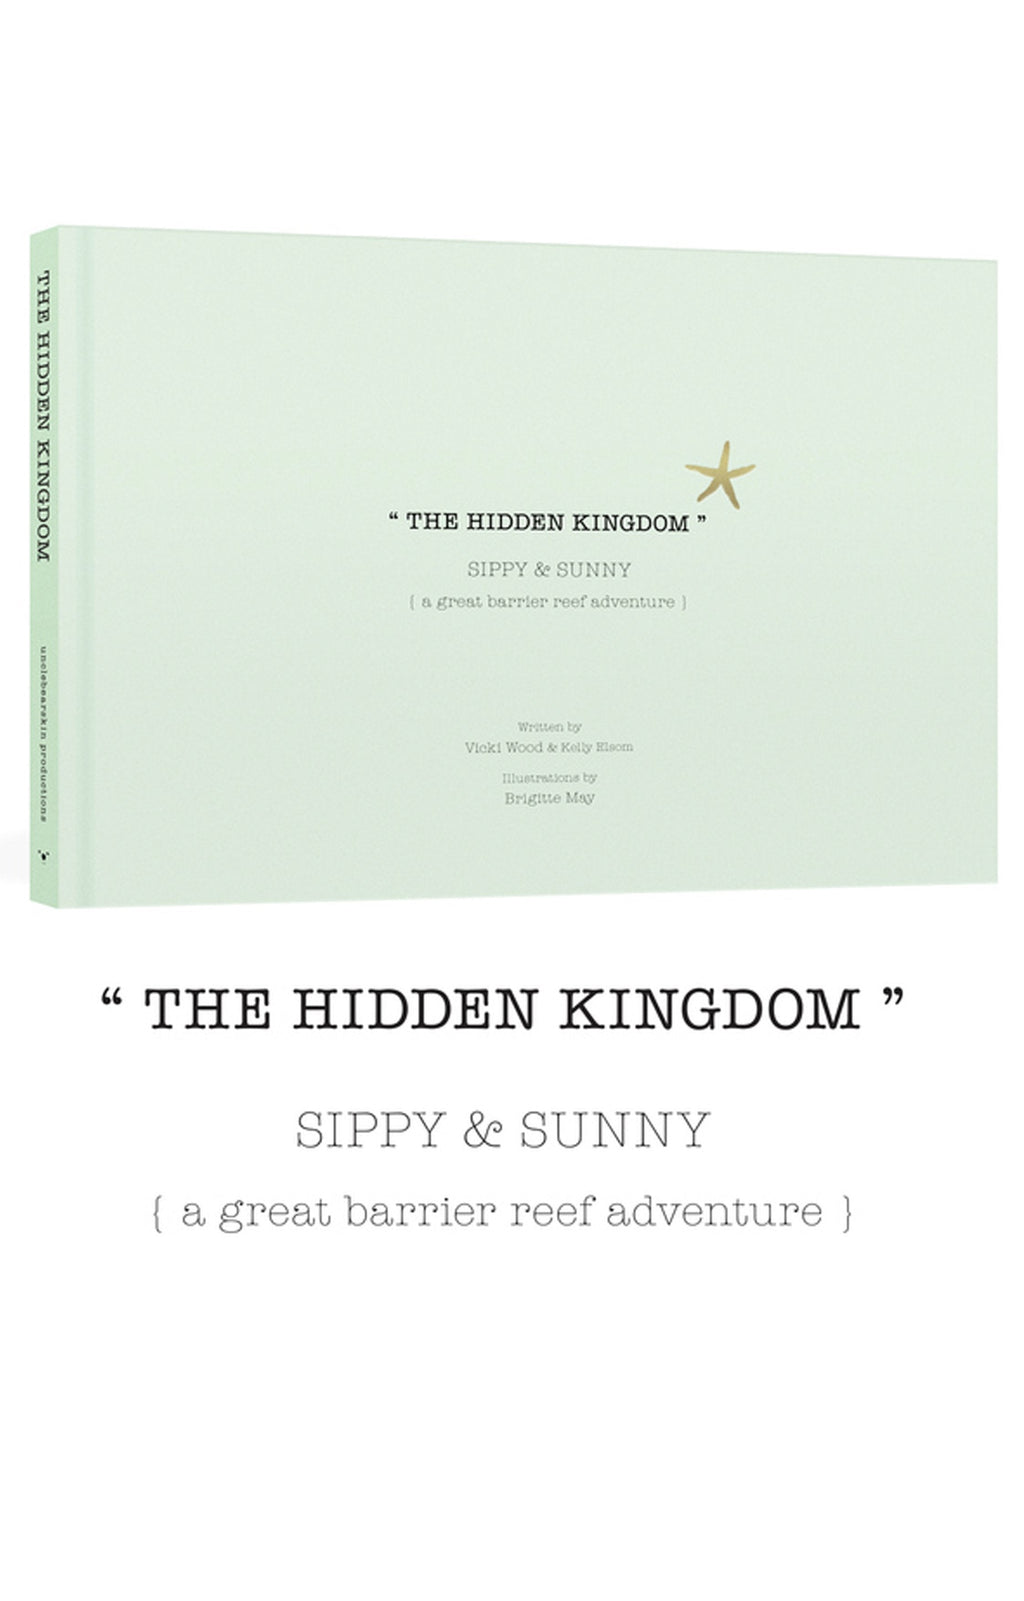 Unclebearskin Productions, THE HIDDEN KINGDOM SIPPY & SUNNY {A GREAT BARRIER REEF ADVENTURE} BOOK - Hello Little Birdie